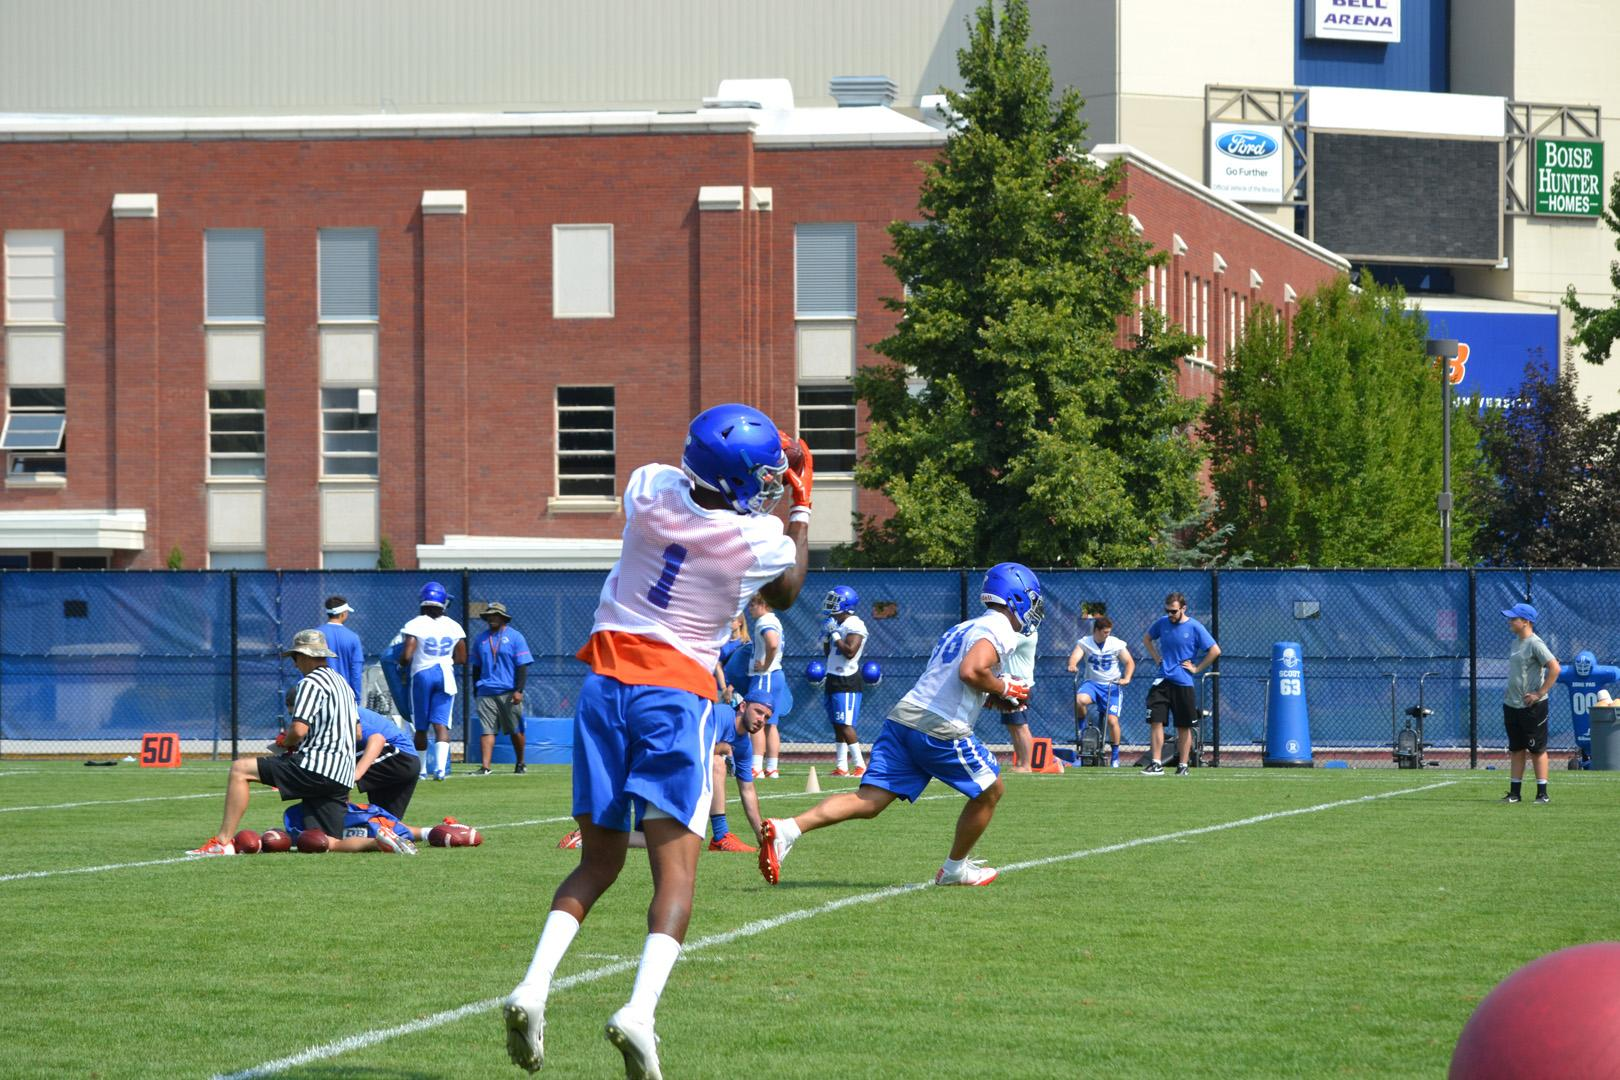 The Boise State Broncos held the first practice of the 2017 season Tuesday. (Photo by Bryan Levin)